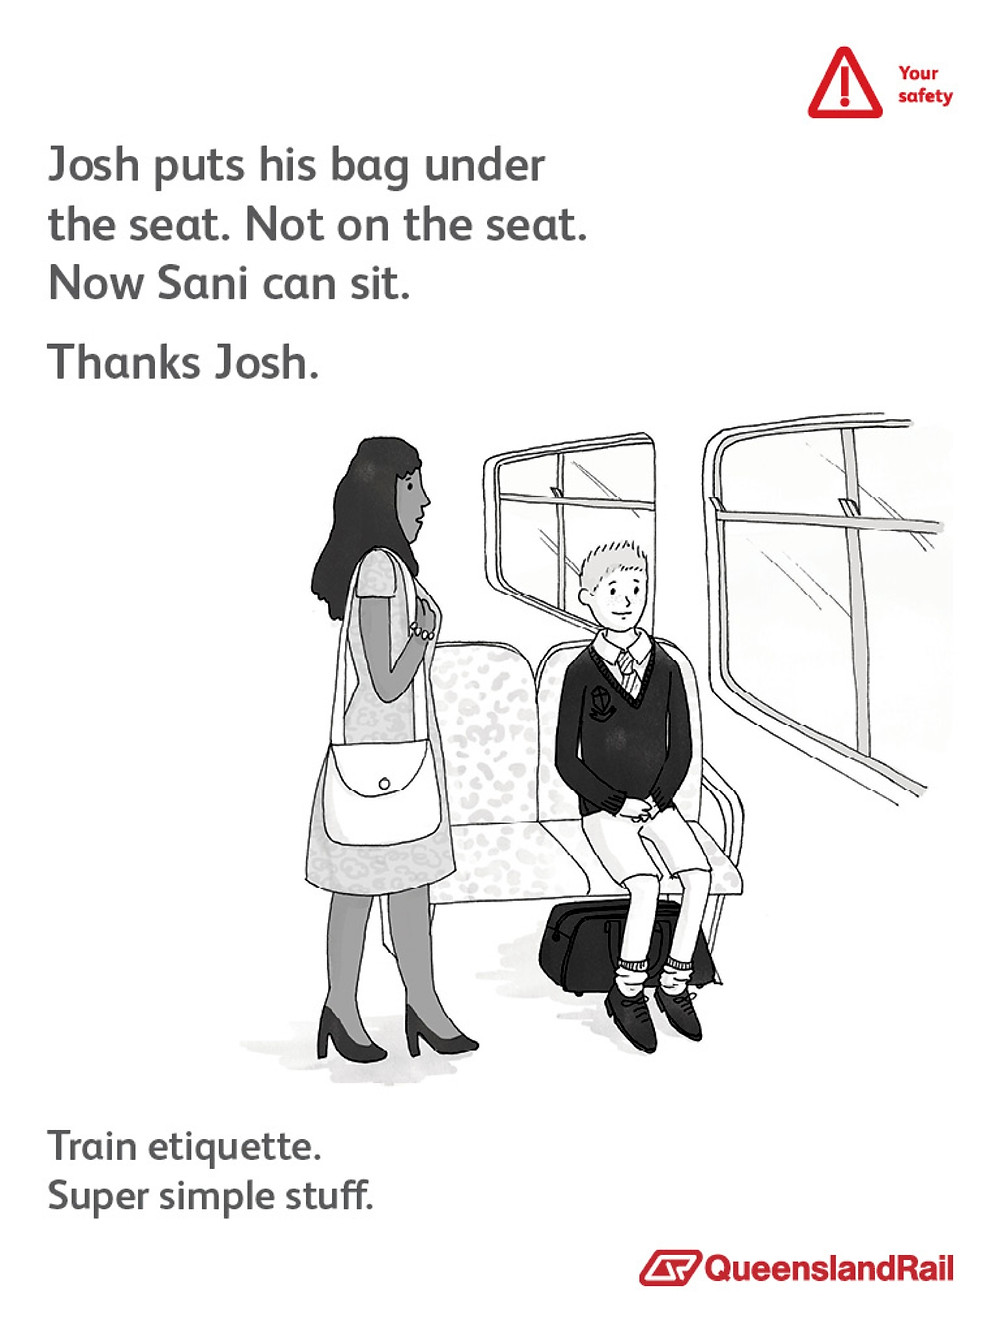 Train etiquette poster, josh puts his bag under the seat, not on it